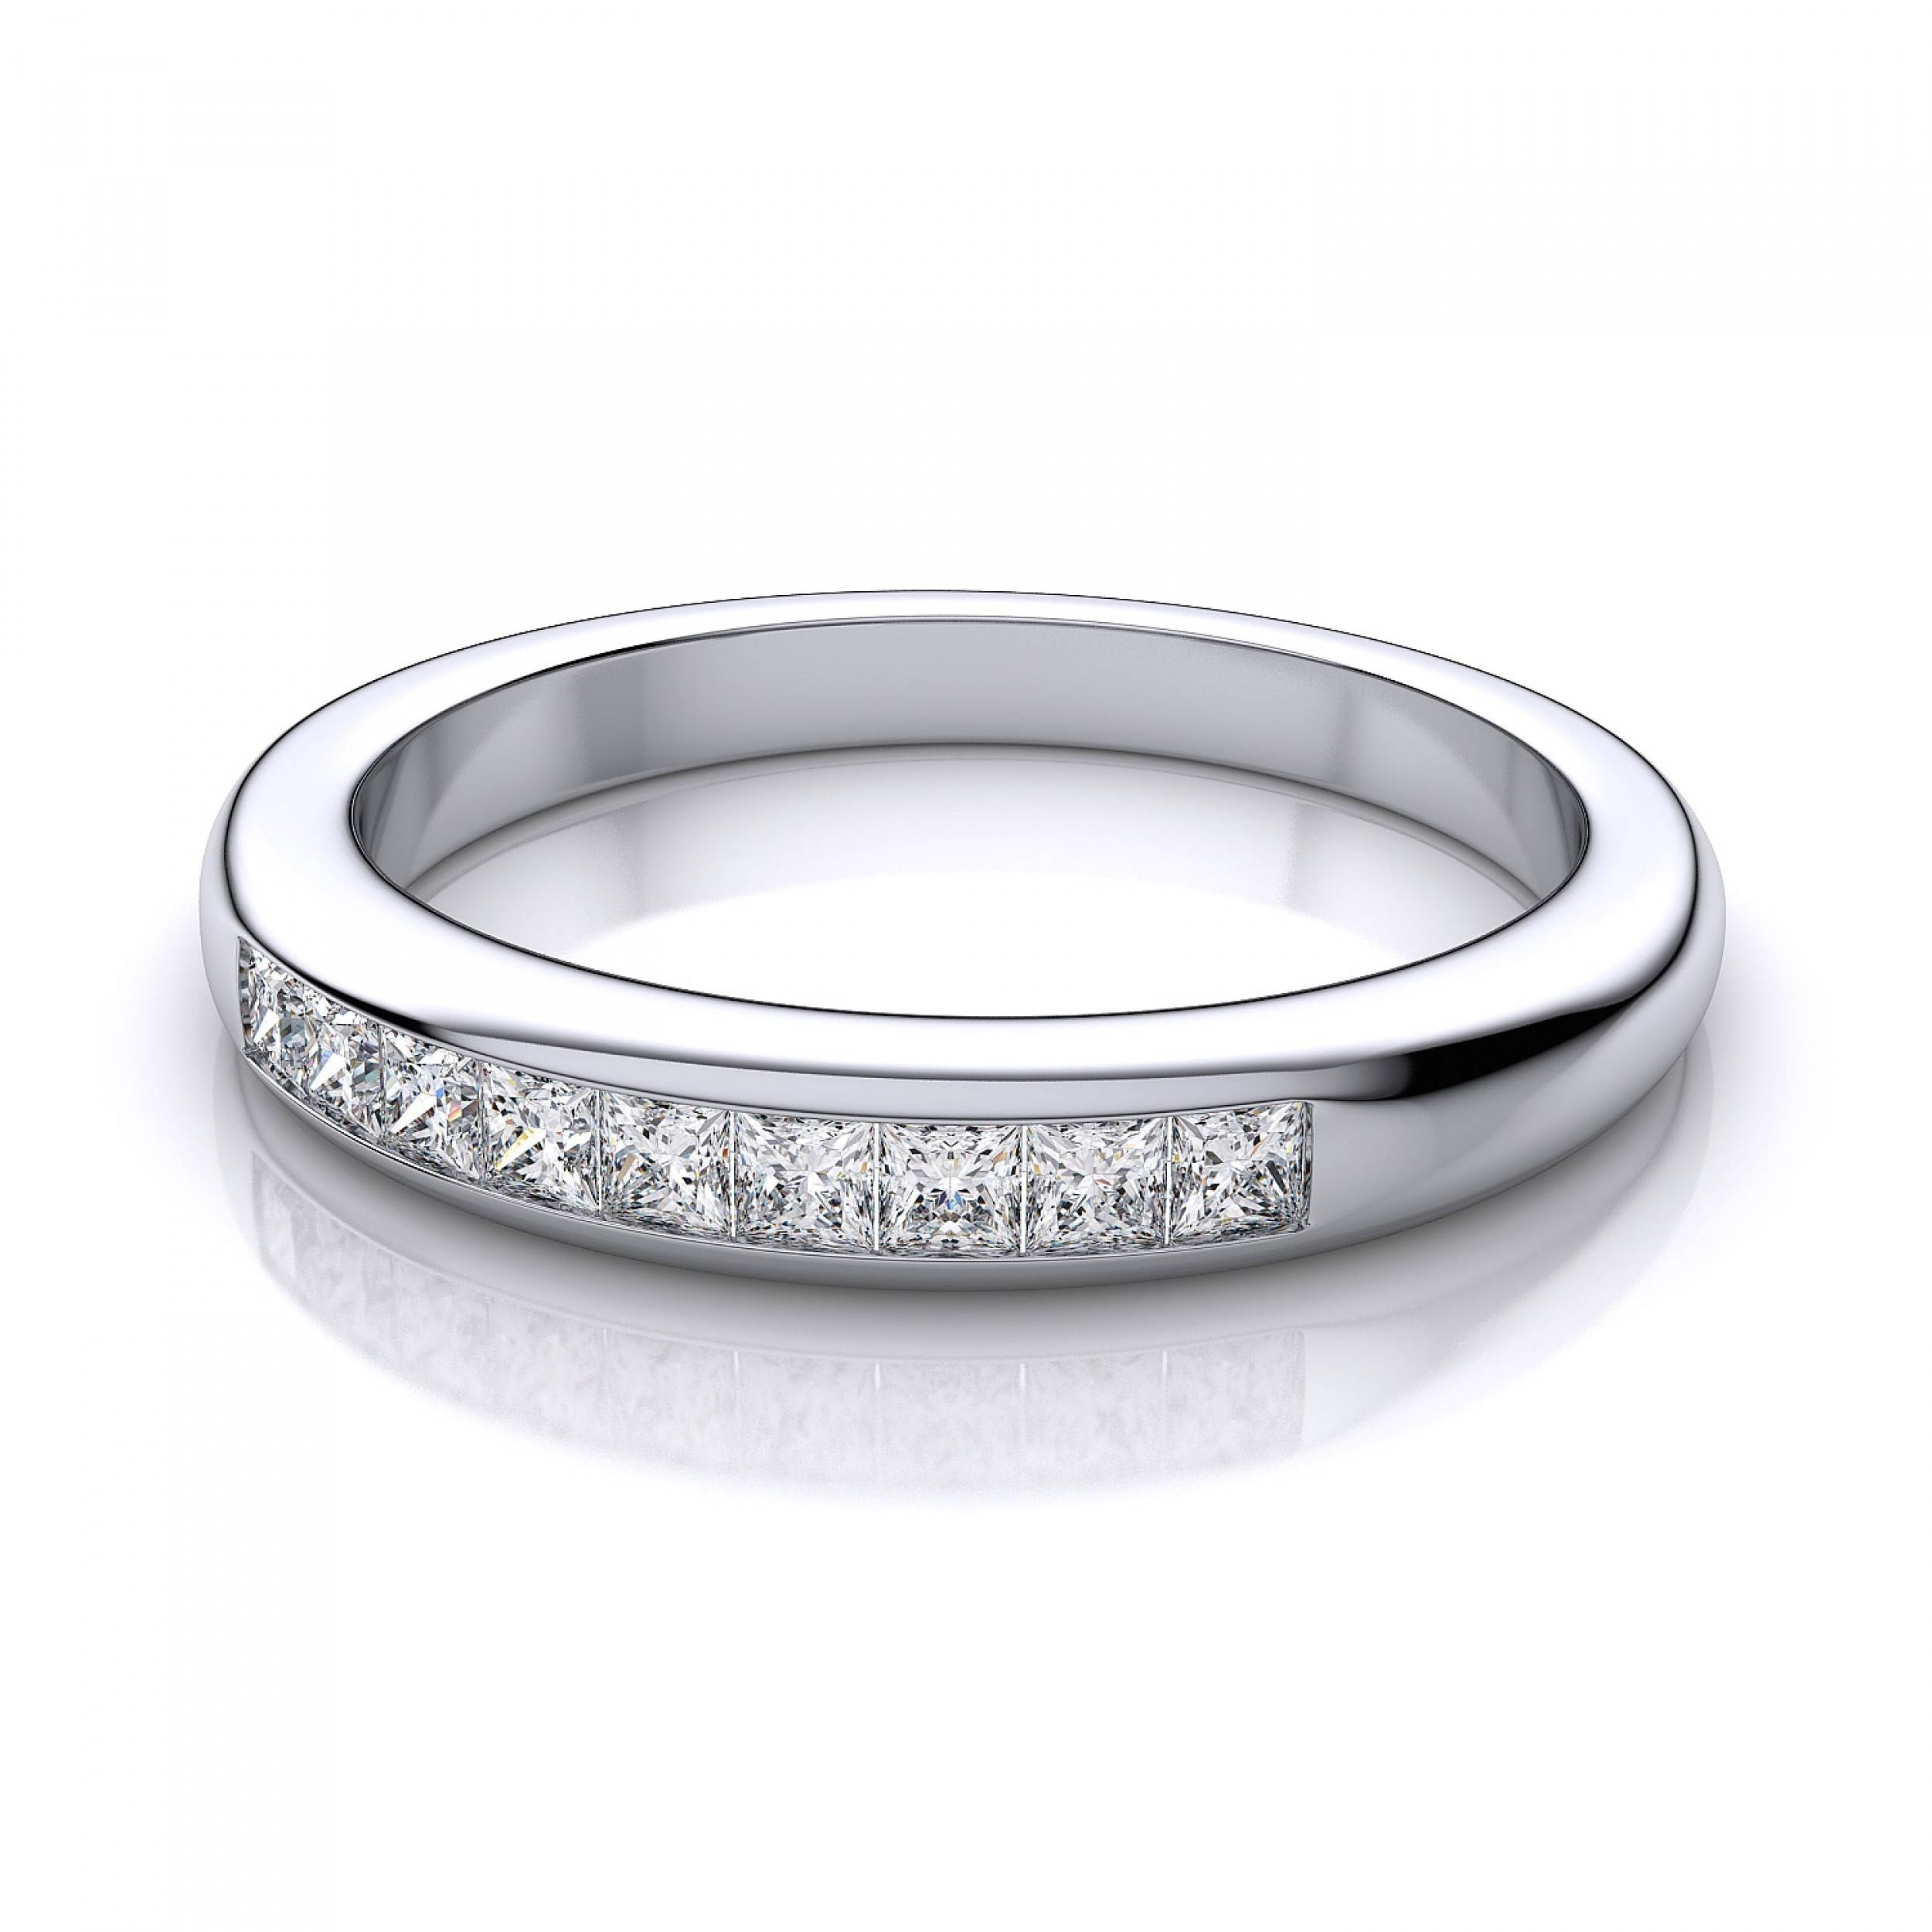 Set Diamond Wedding Band In 14k White Gold I1 I Pertaining To White Gold And Diamond Wedding Rings (View 11 of 15)